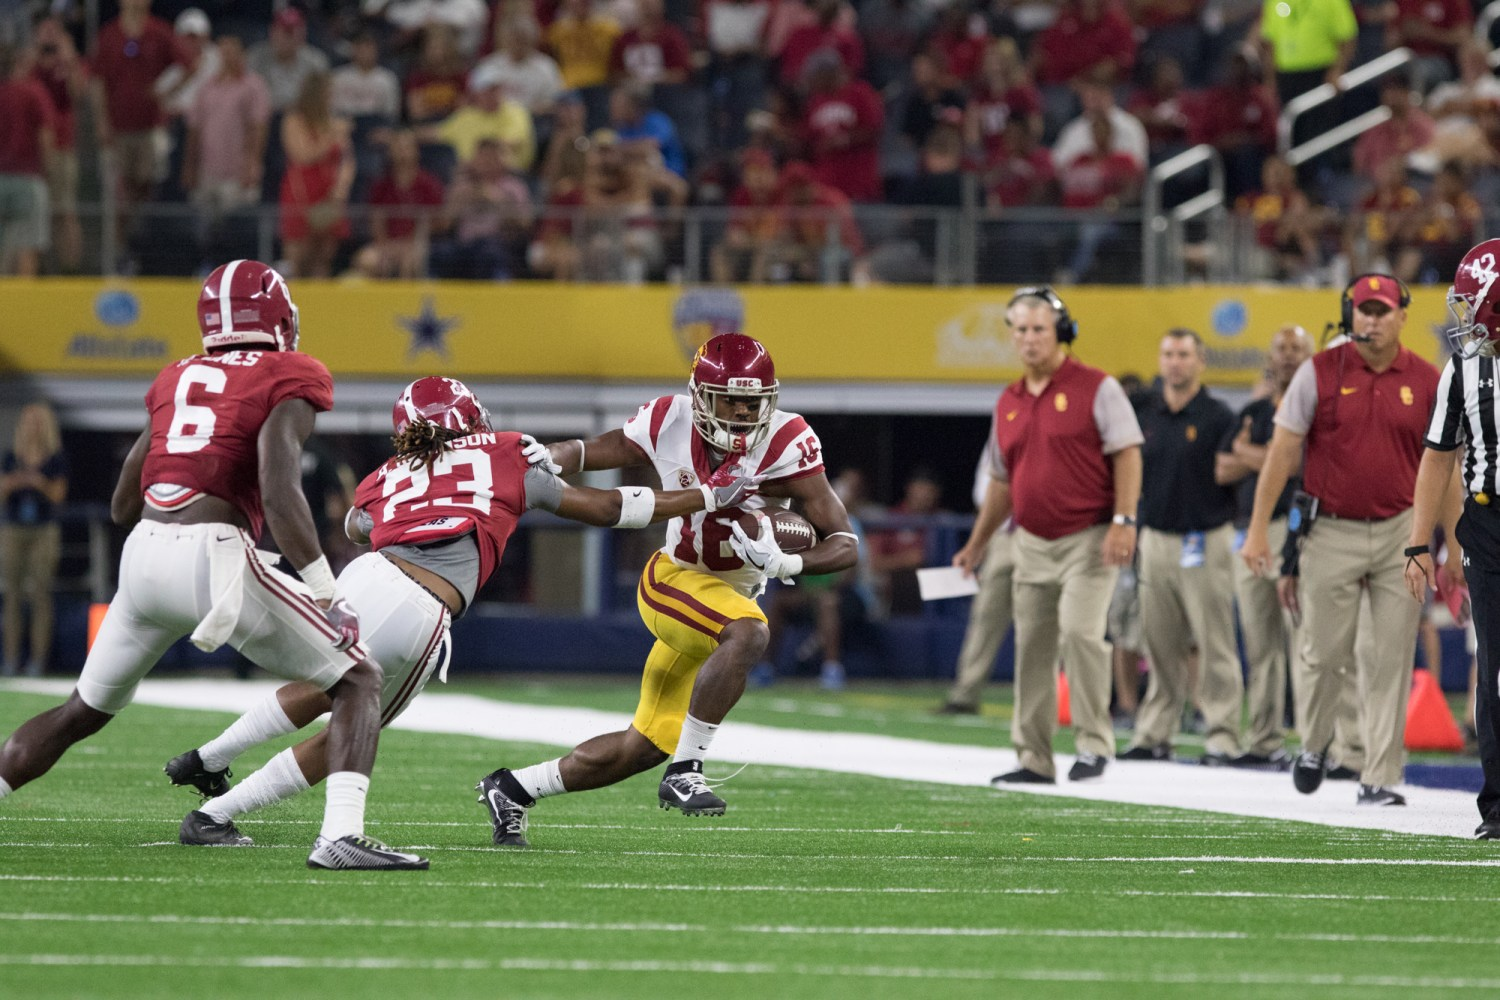 Sophomore tailback Dominic Davis ran for five yards on two carries Saturday against the Alabama Crimson Tide.